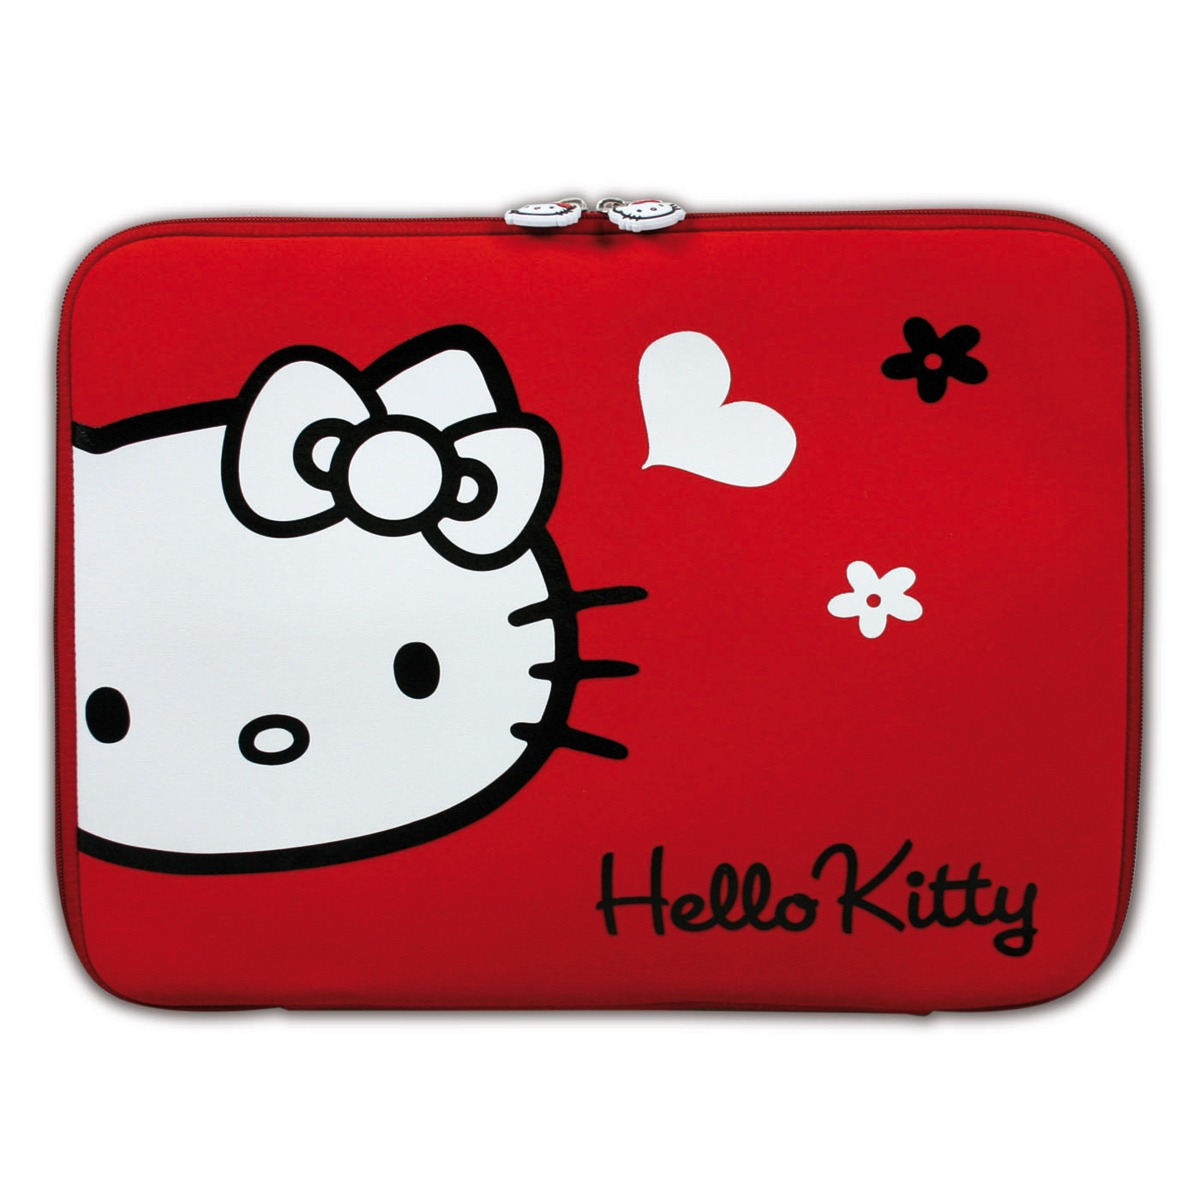 Port designs hello kitty skin 13 3 rouge sac sacoche housse port designs sur - Bureau hello kitty pas cher ...